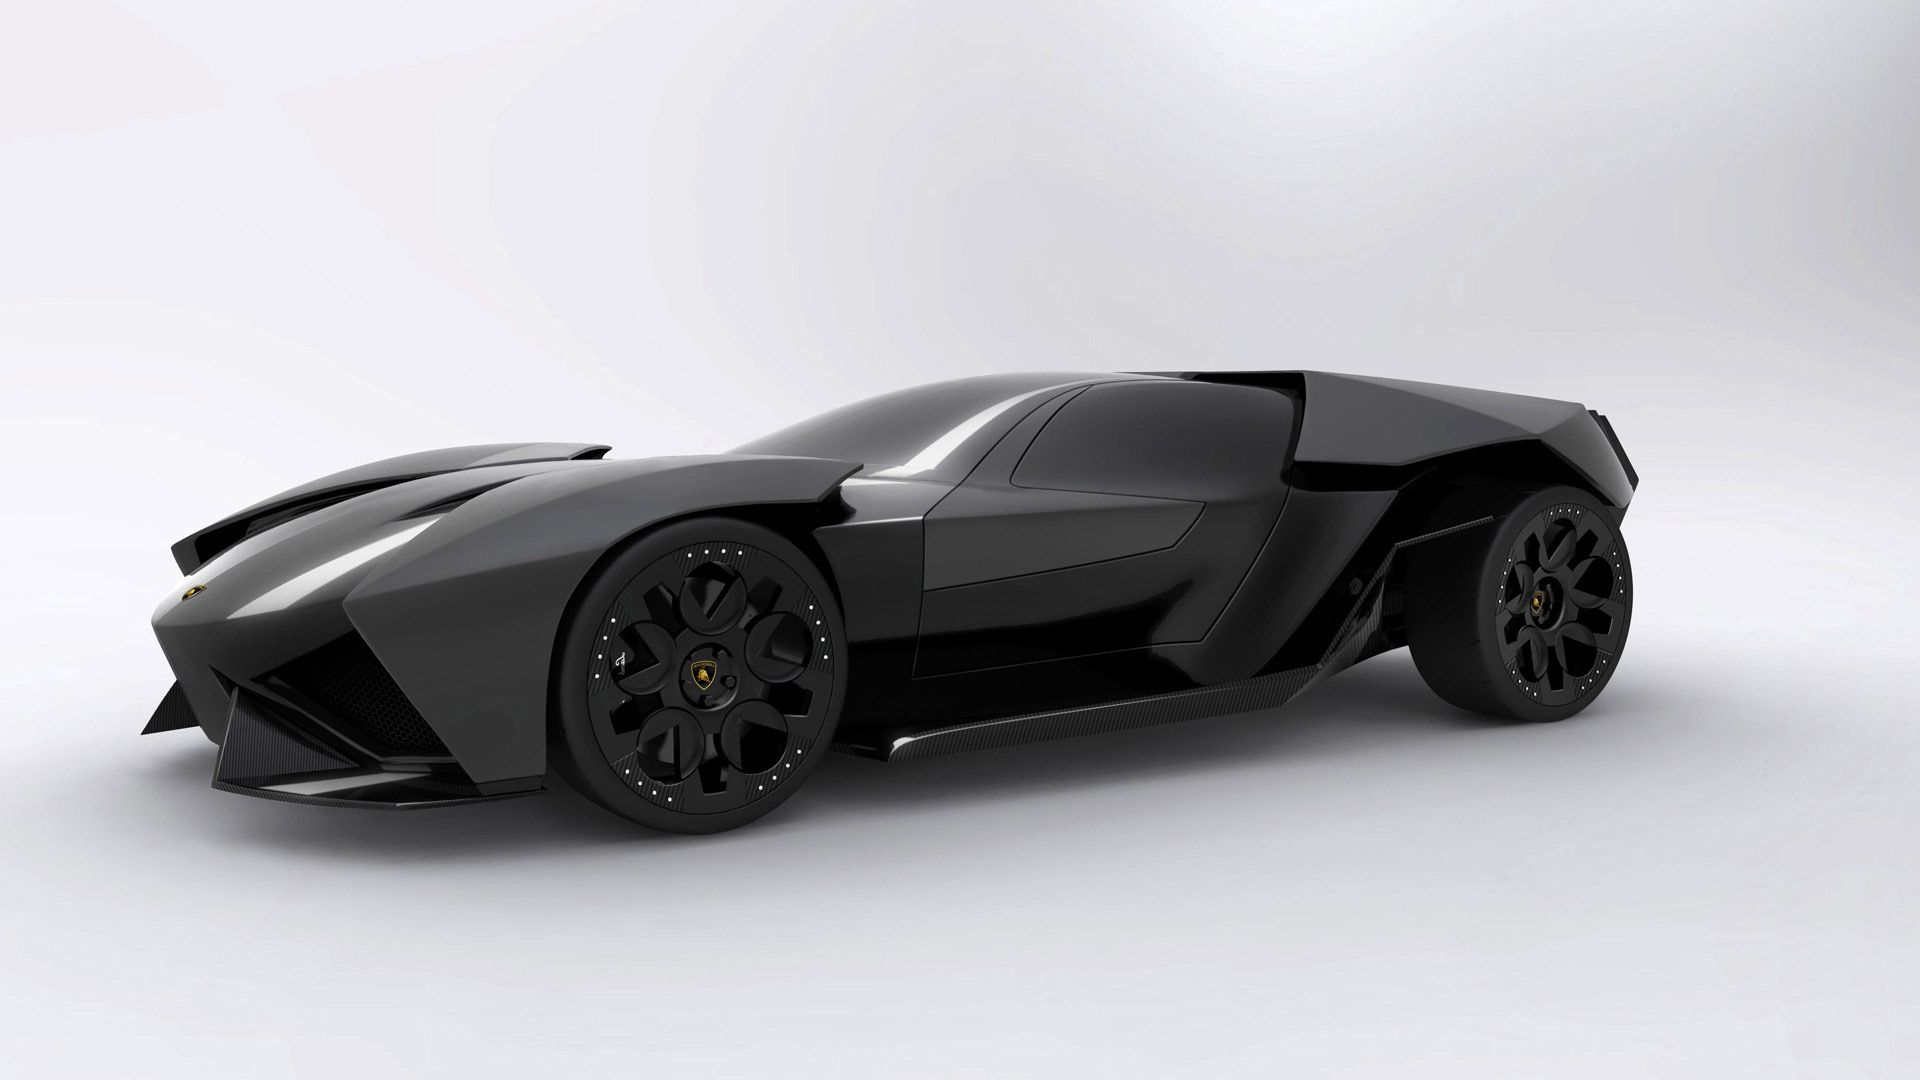 79 The Best 2020 Lamborghini Ankonian Price and Release date